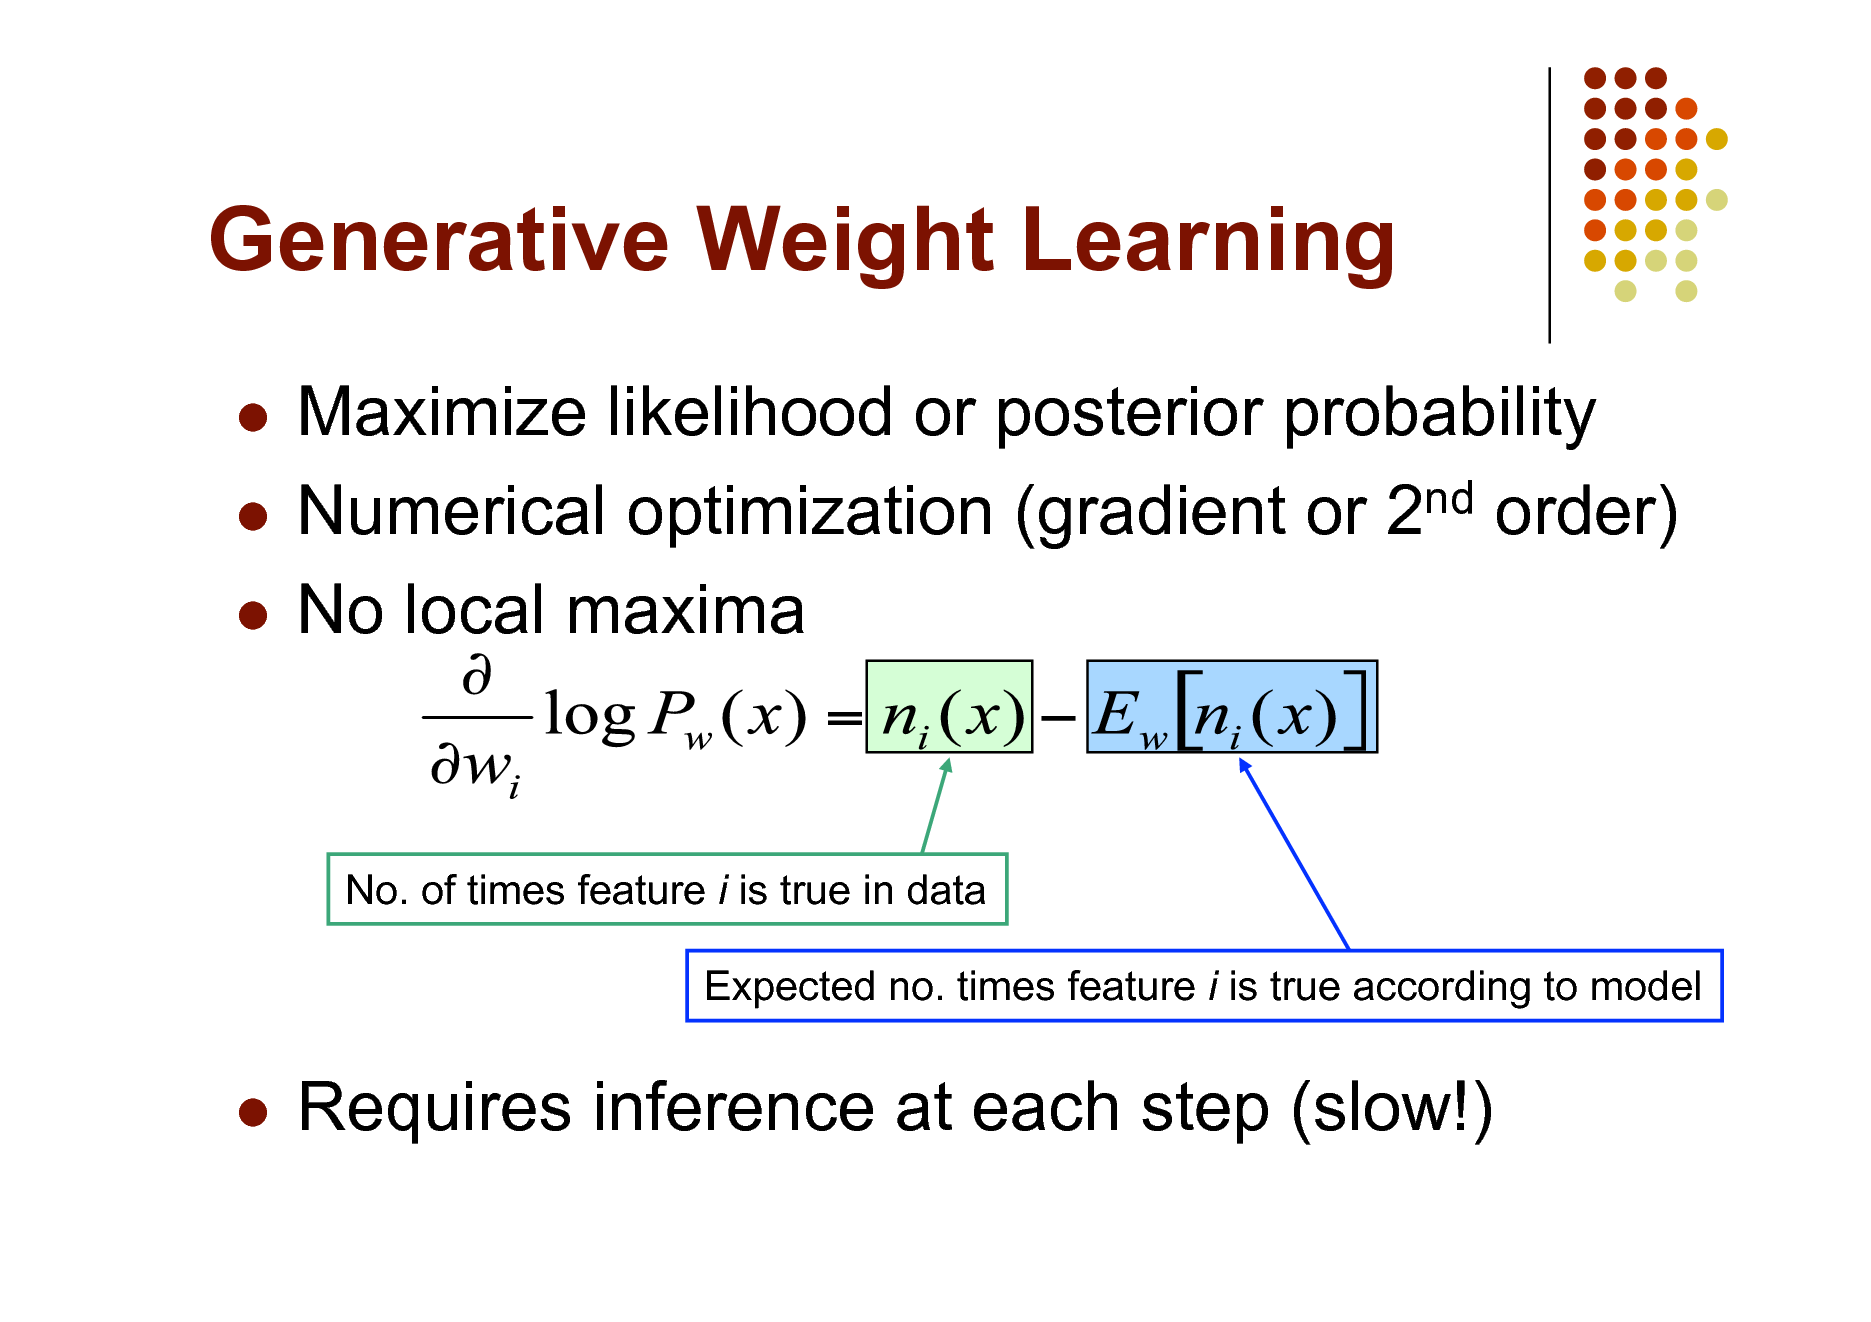 Slide: Generative Weight Learning Maximize likelihood or posterior probability  Numerical optimization (gradient or 2nd order)  No local maxima   No. of times feature i is true in data Expected no. times feature i is true according to model    Requires inference at each step (slow!)